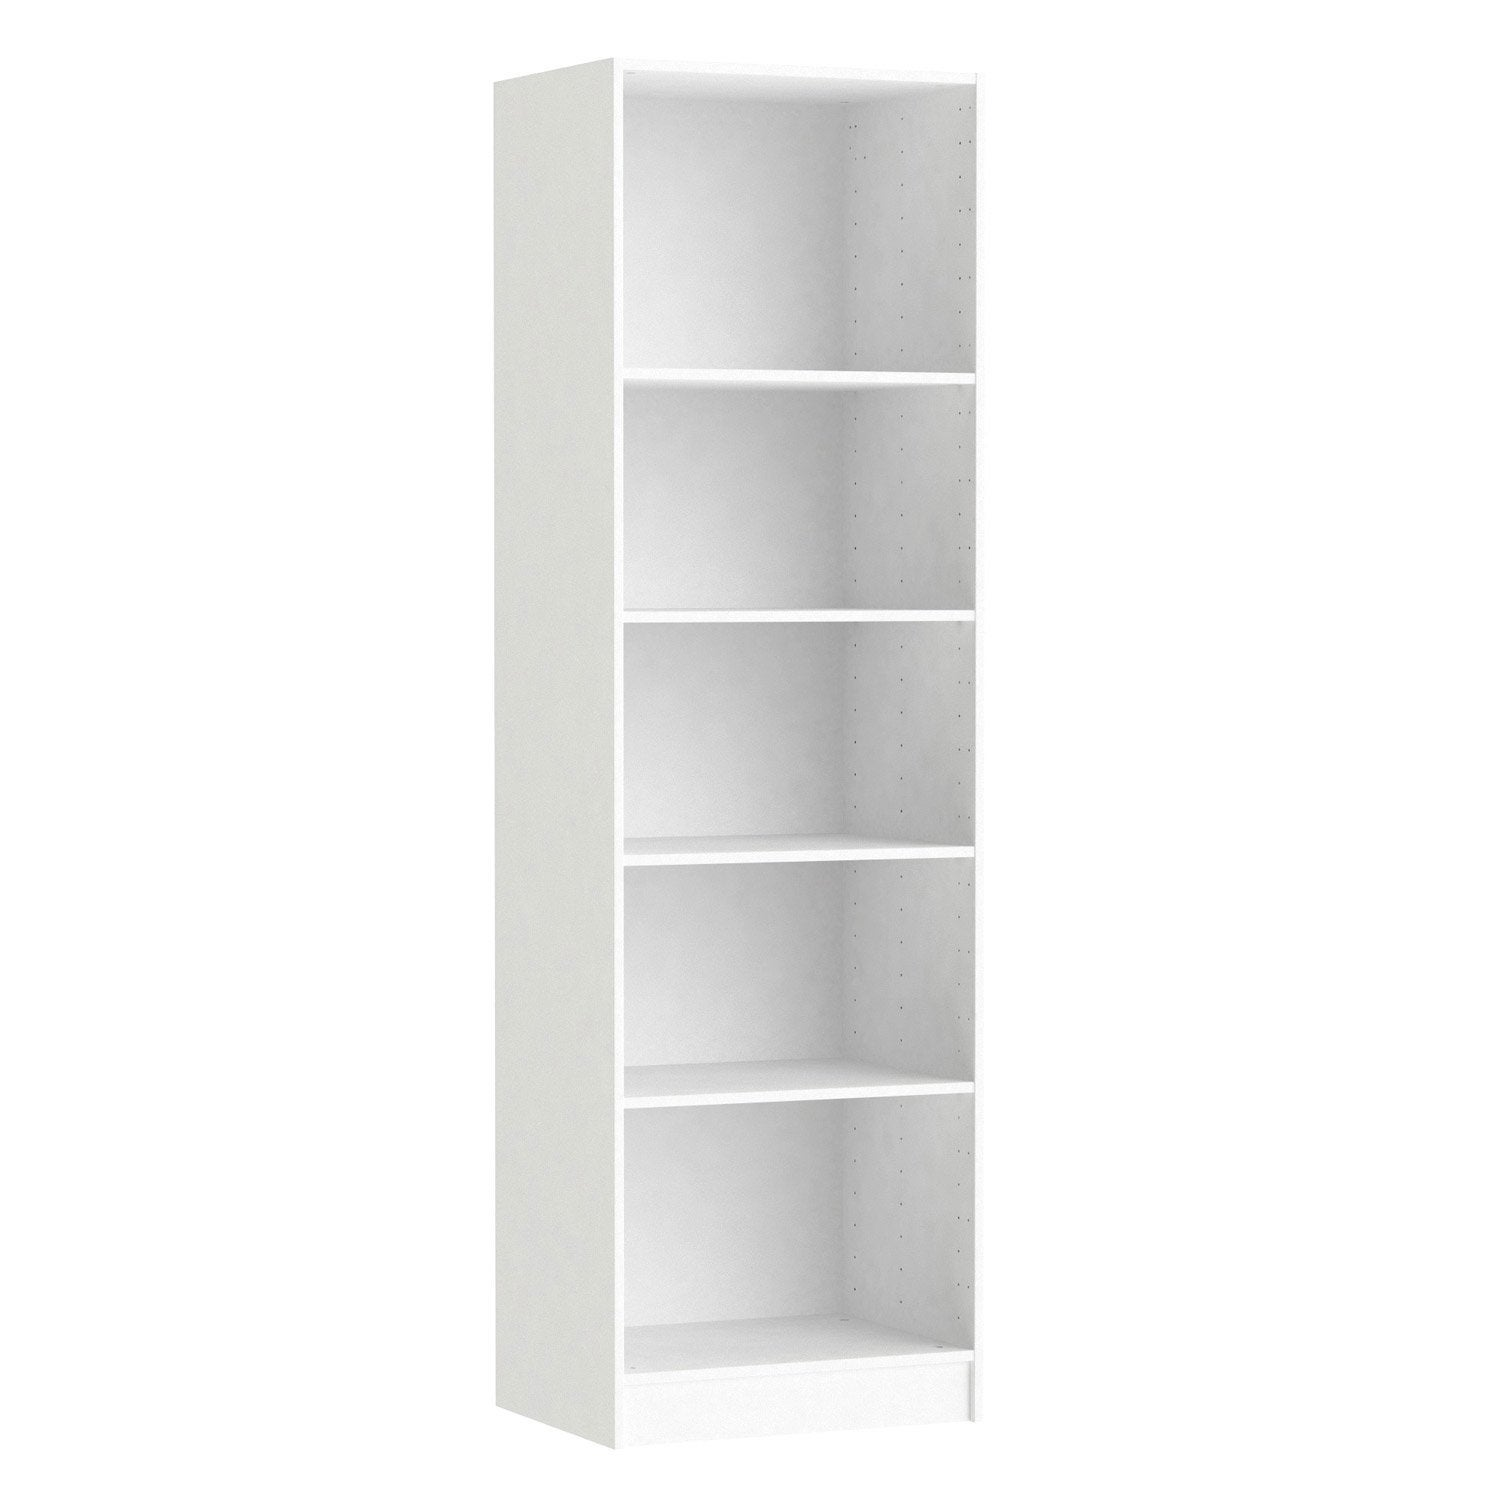 Caisson spaceo home 200 x 60 x 45 cm blanc leroy merlin - Castorama amenagement placard ...